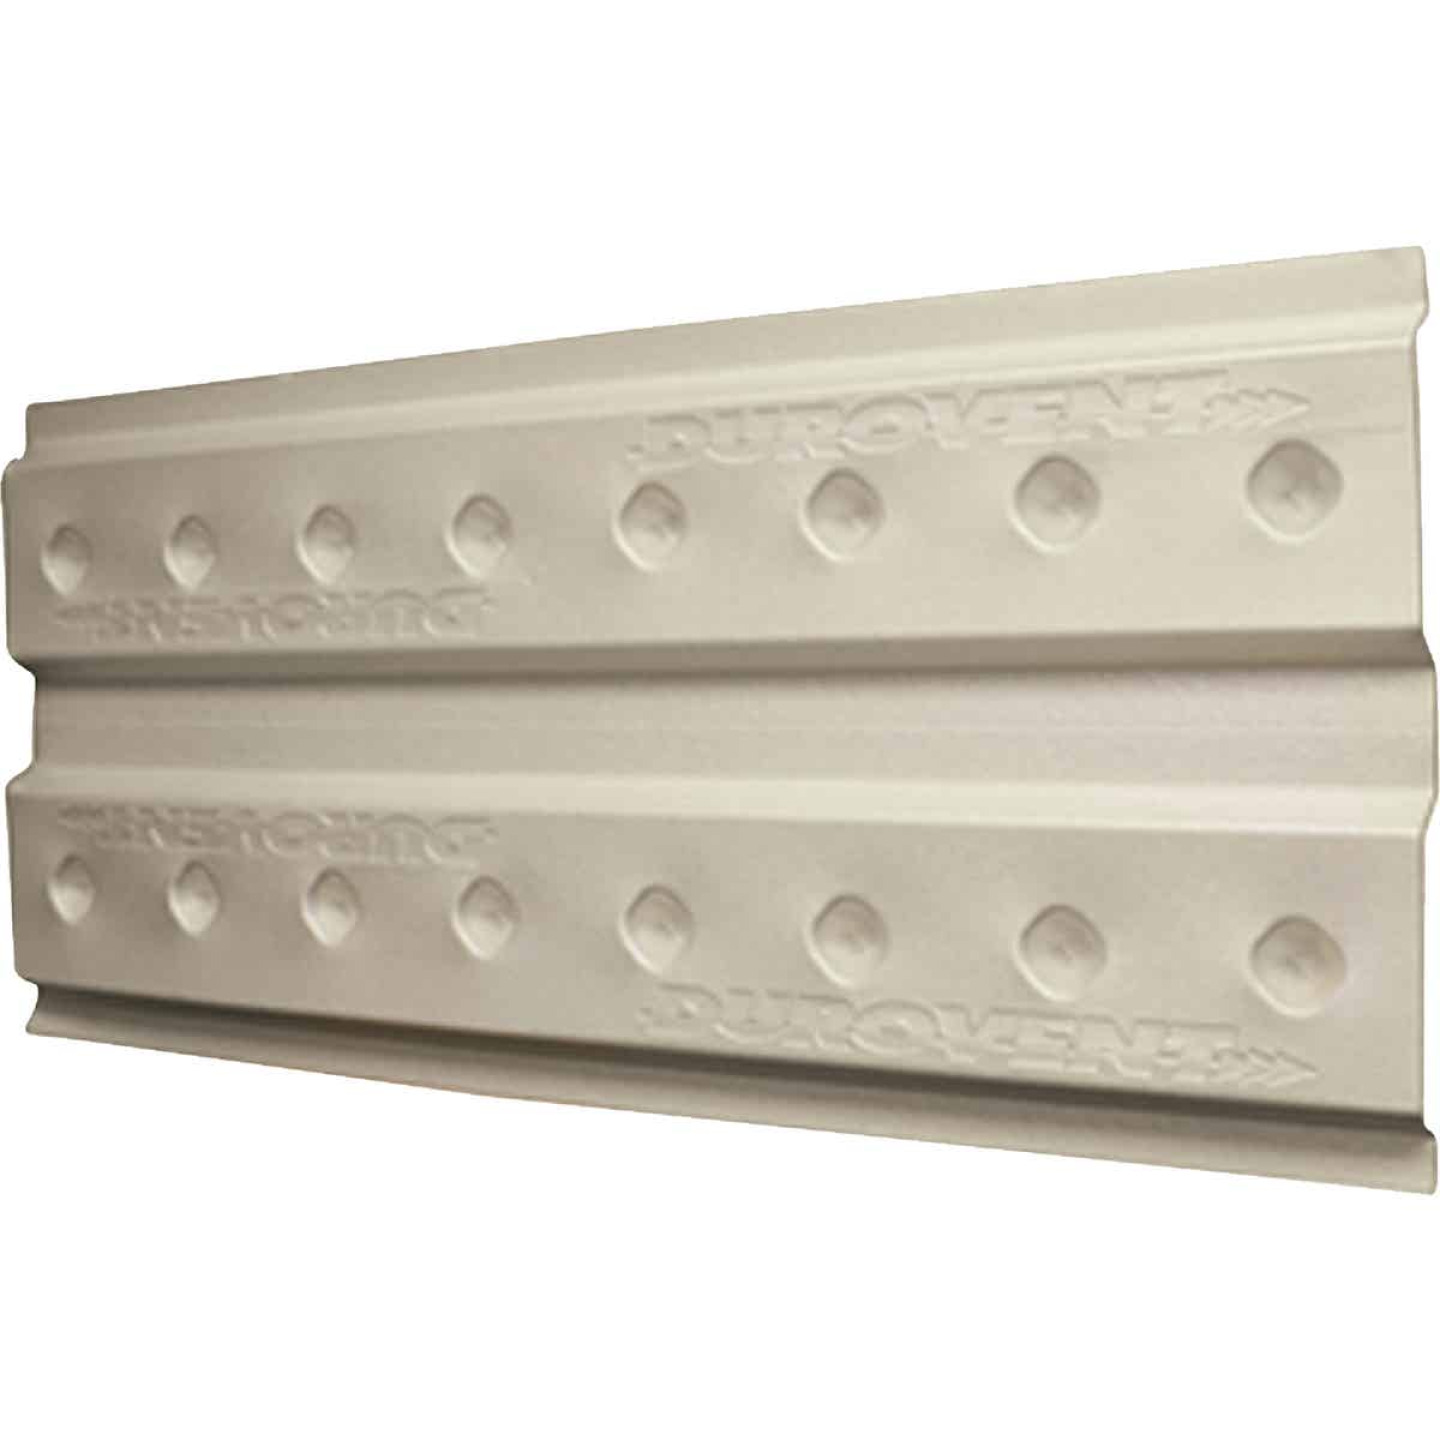 """ADO Durovent Baffle 22"""" x 48"""" Polystyrene DuroVent Attic Rafter Vent Image 1"""